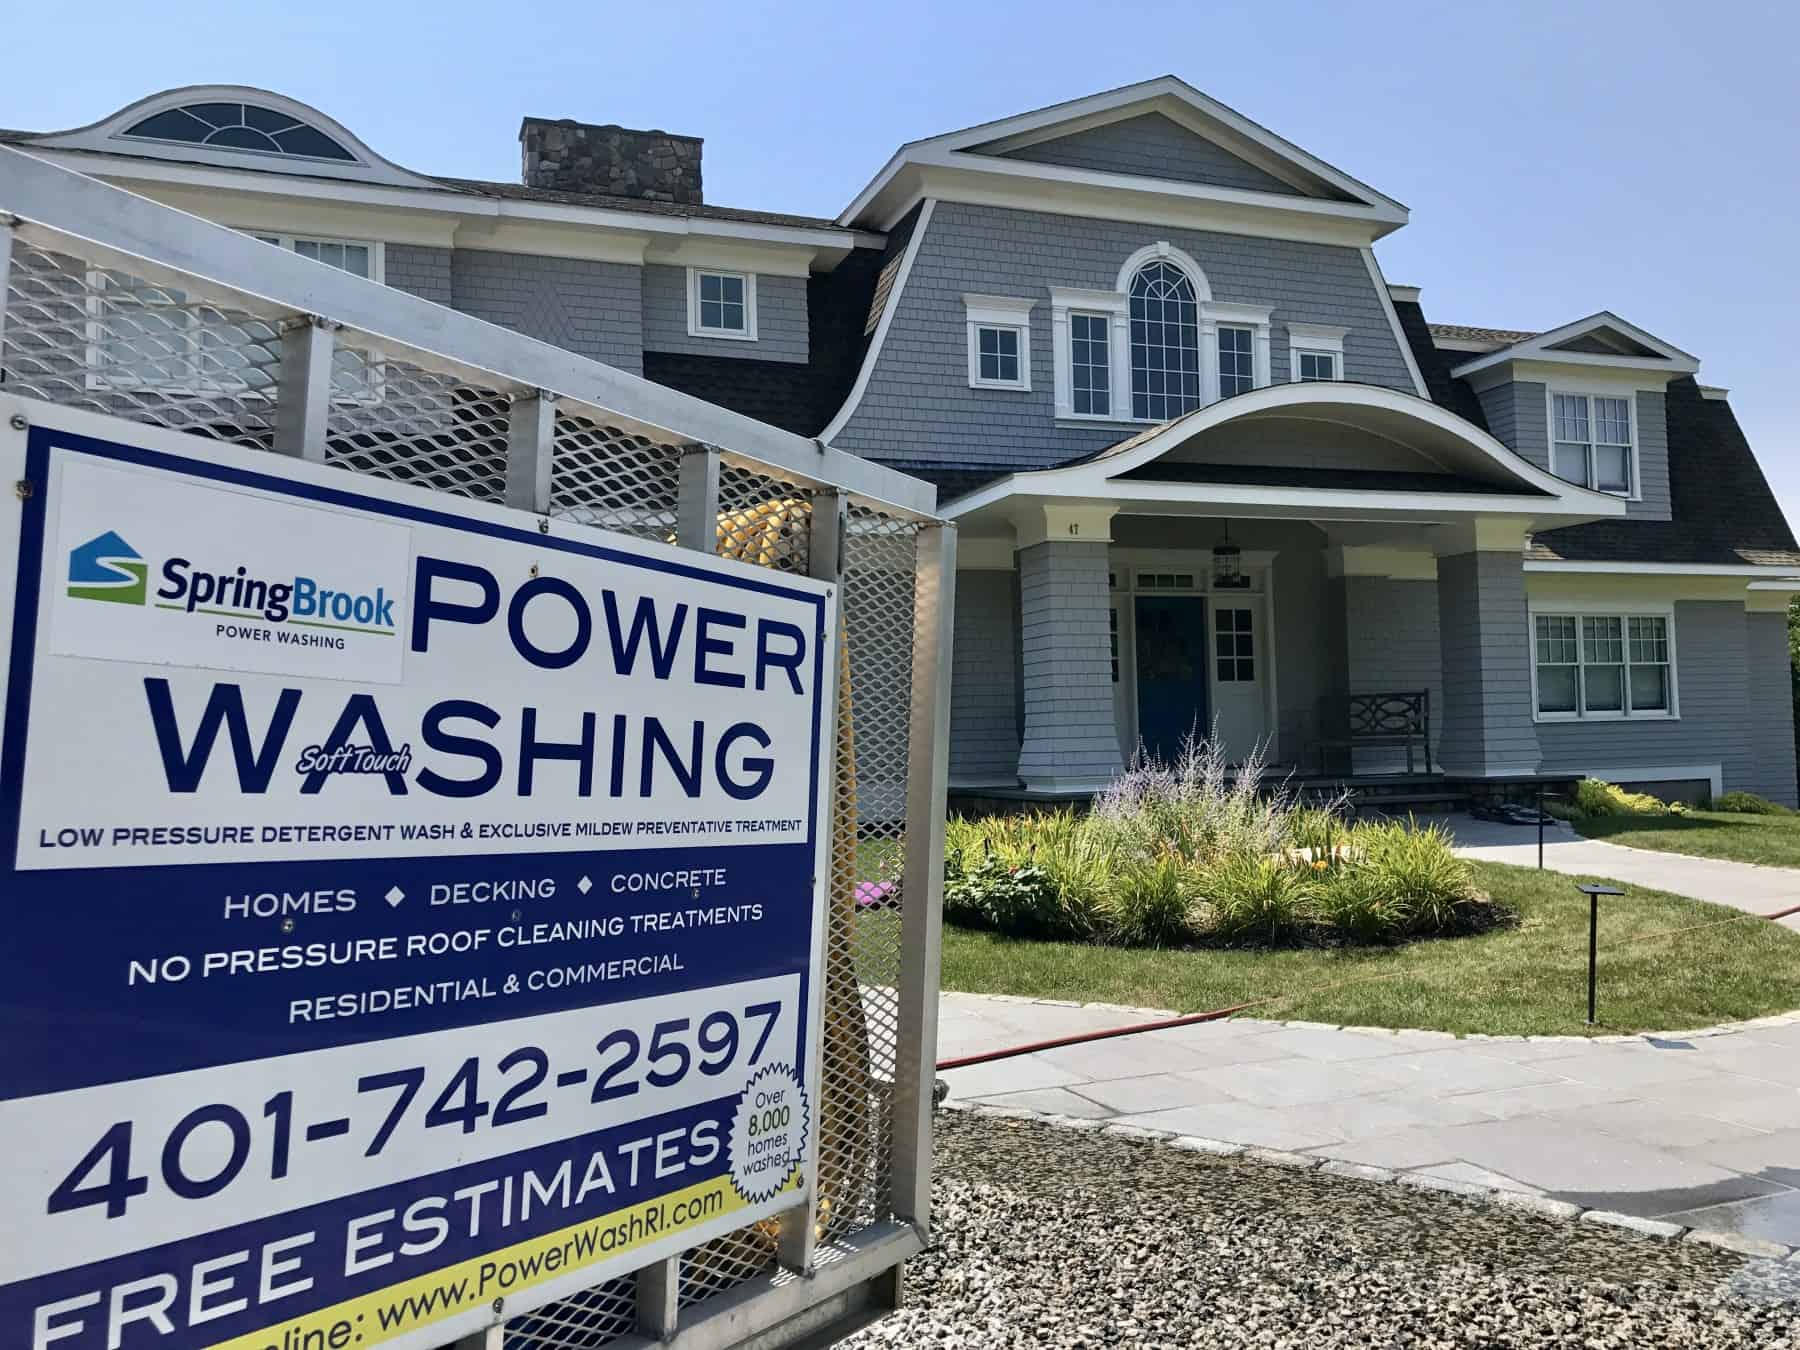 SpringBrook Power Washing Sign in Front of a House in Rhode Island